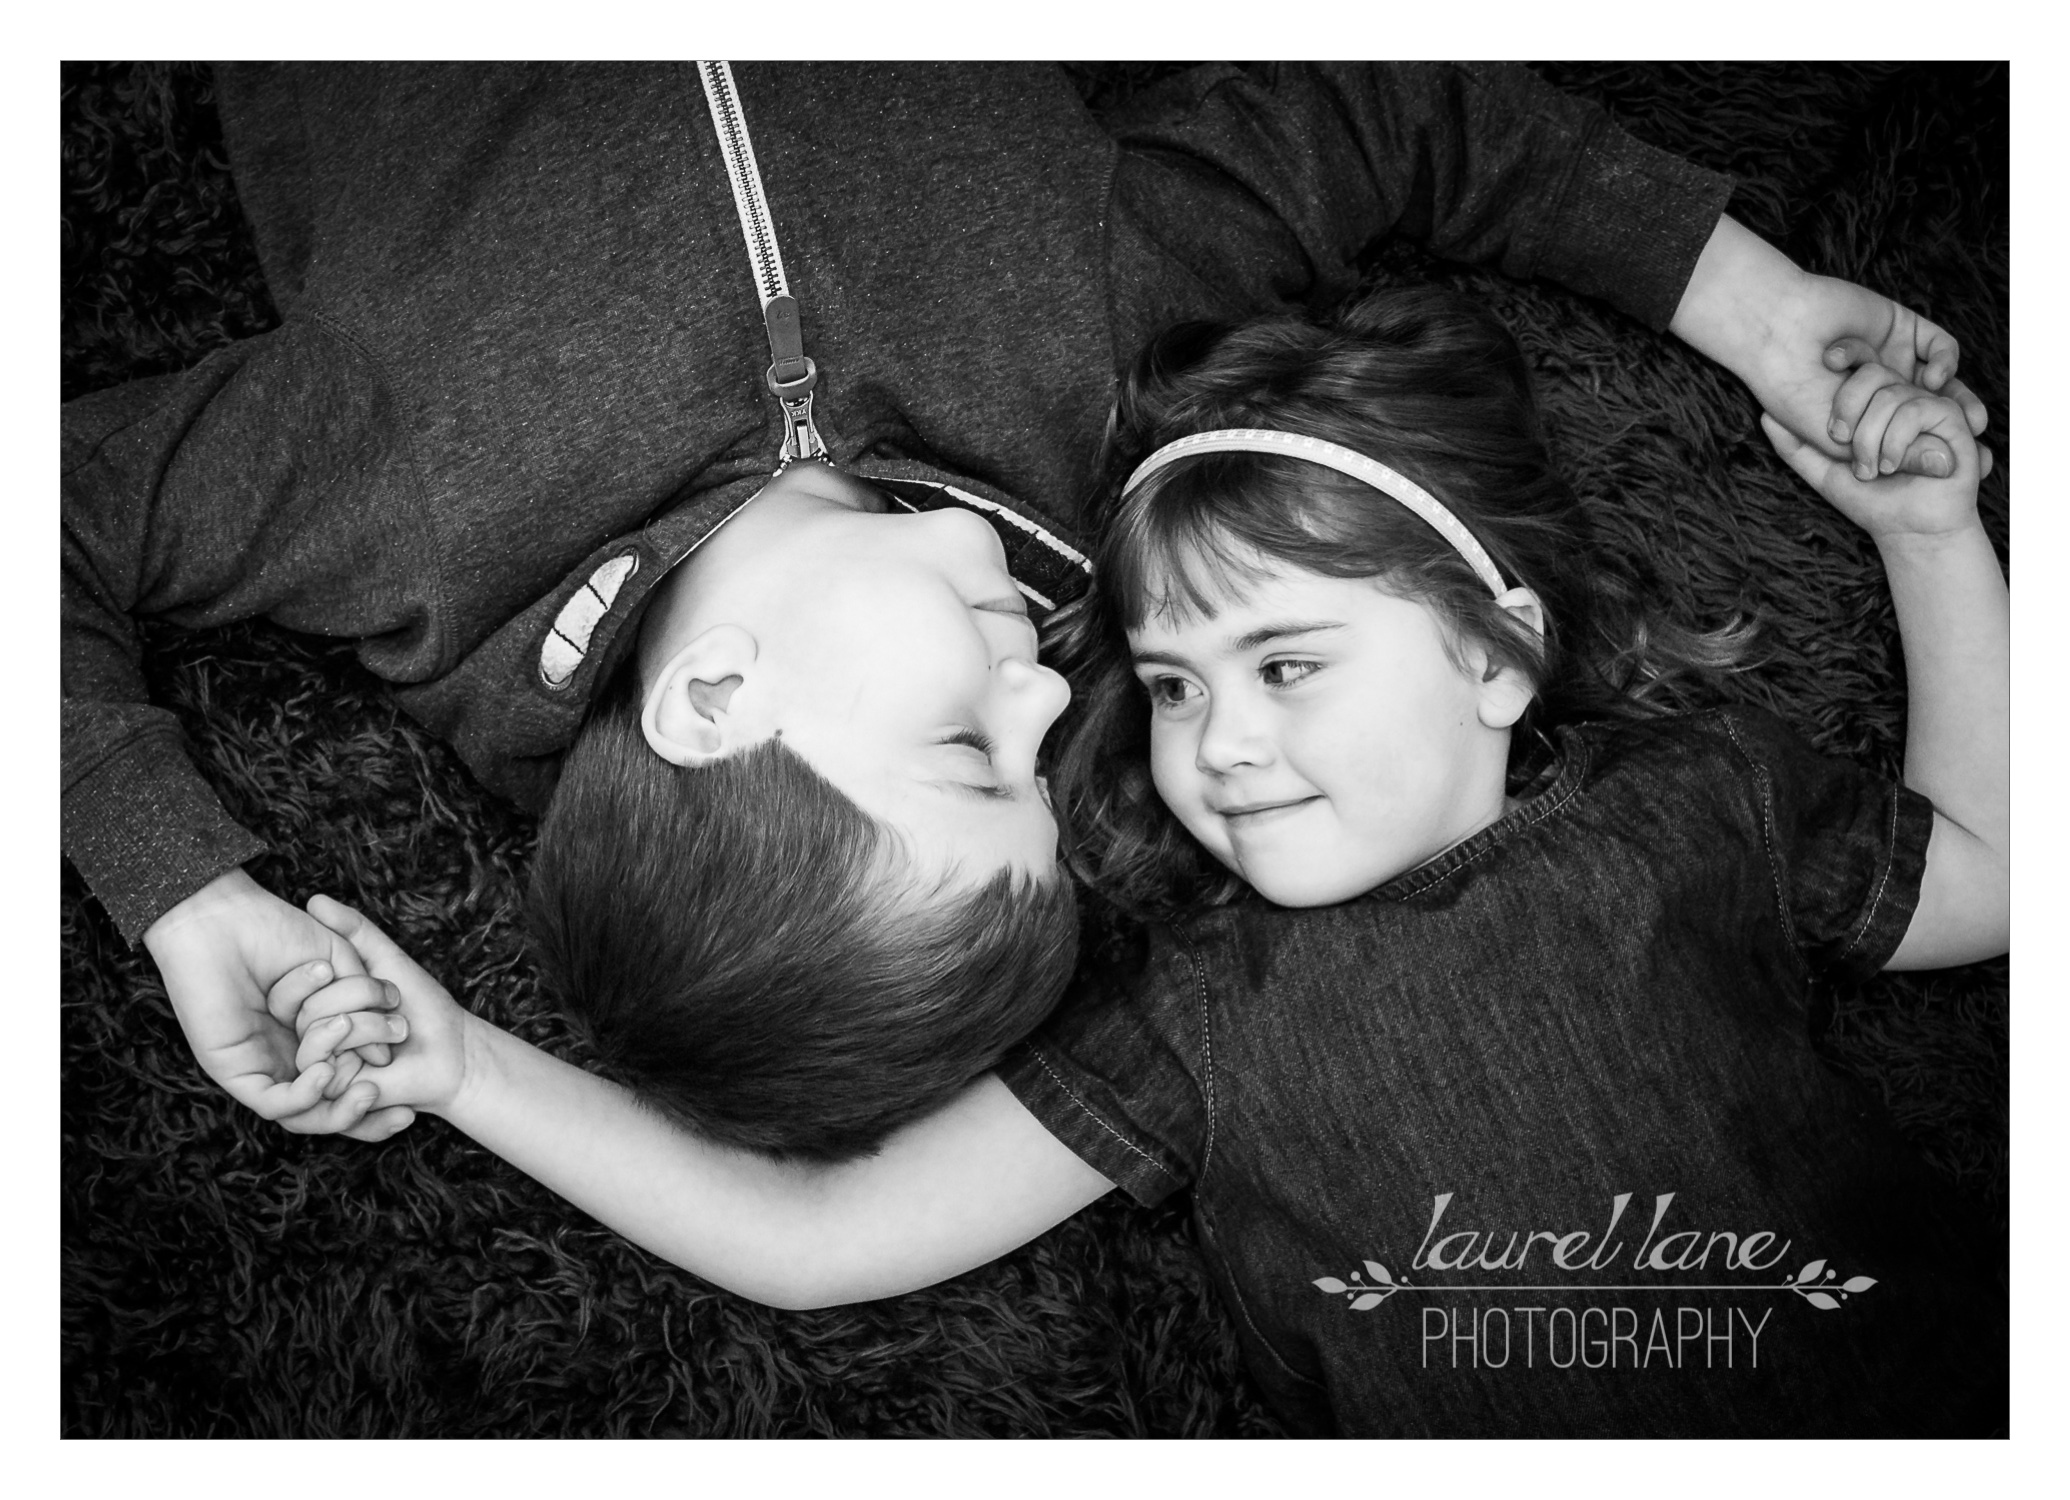 portrait by child photographer laurel lane photography in macclesfield holding hands.jpg